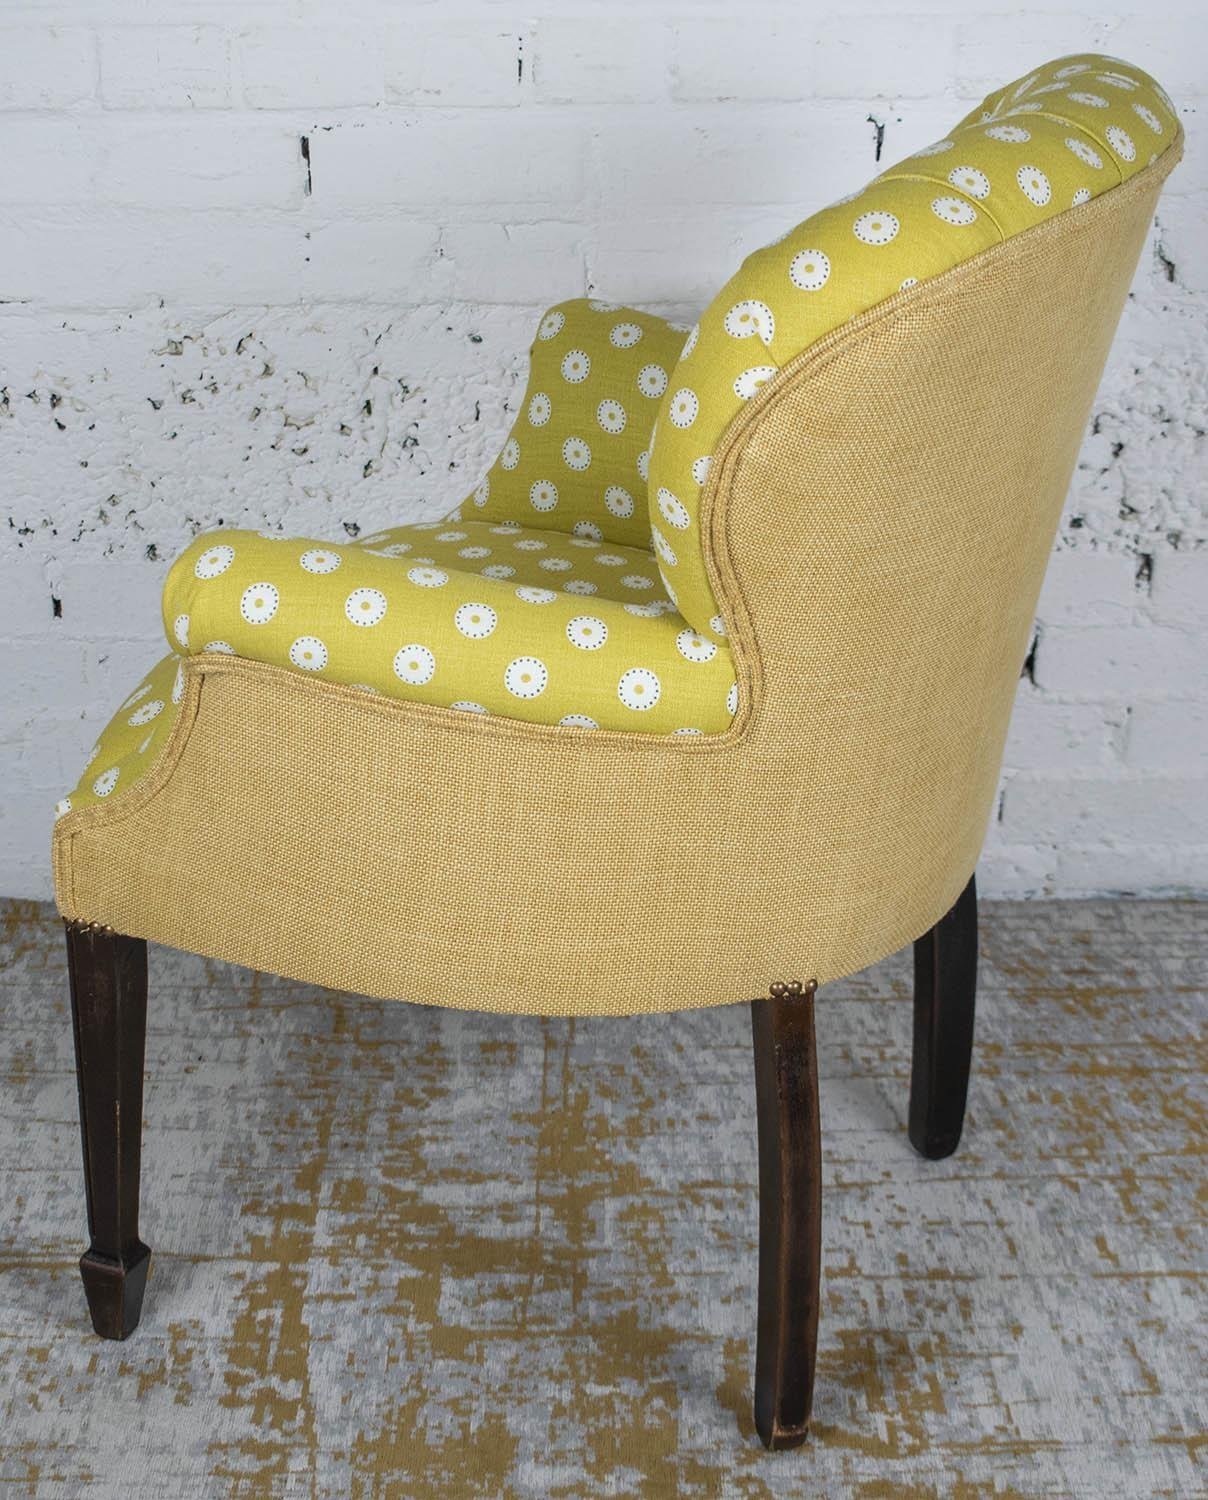 ARMCHAIR, Georgian style in yellow and white dot patterned fabric, 86cm H x 66cm x 66cm. - Image 2 of 3